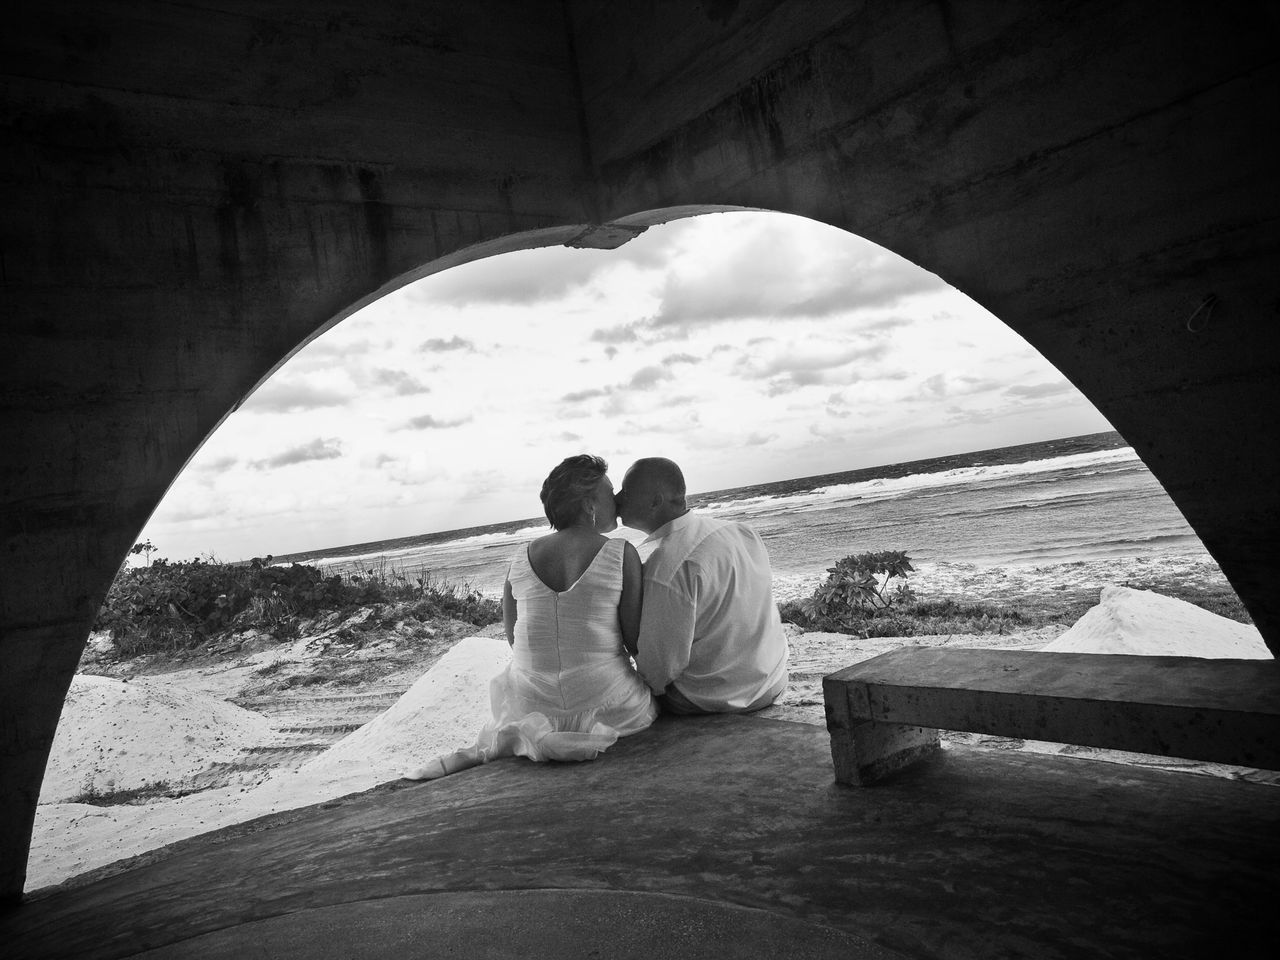 love, bride, two people, togetherness, wedding dress, rear view, sea, real people, wedding, romance, bonding, heterosexual couple, bridegroom, men, couple - relationship, women, sitting, beach, day, lifestyles, groom, nature, water, married, indoors, young women, sky, young adult, adult, adults only, people